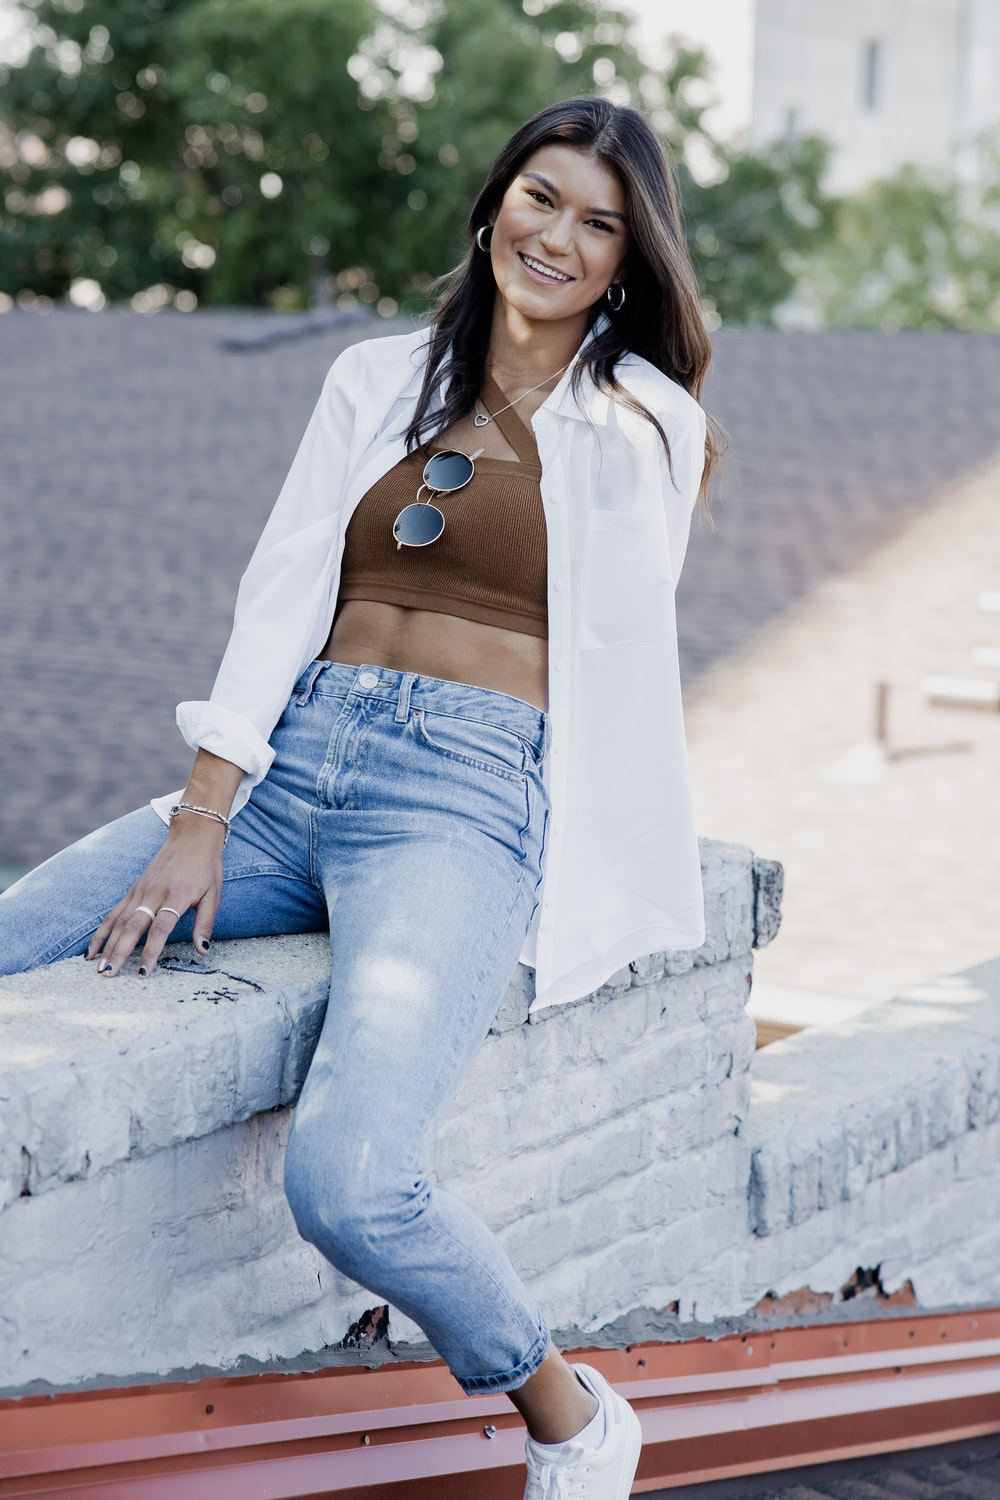 woman in white long sleeve shirt and blue denim jeans sitting on gray concrete bench during